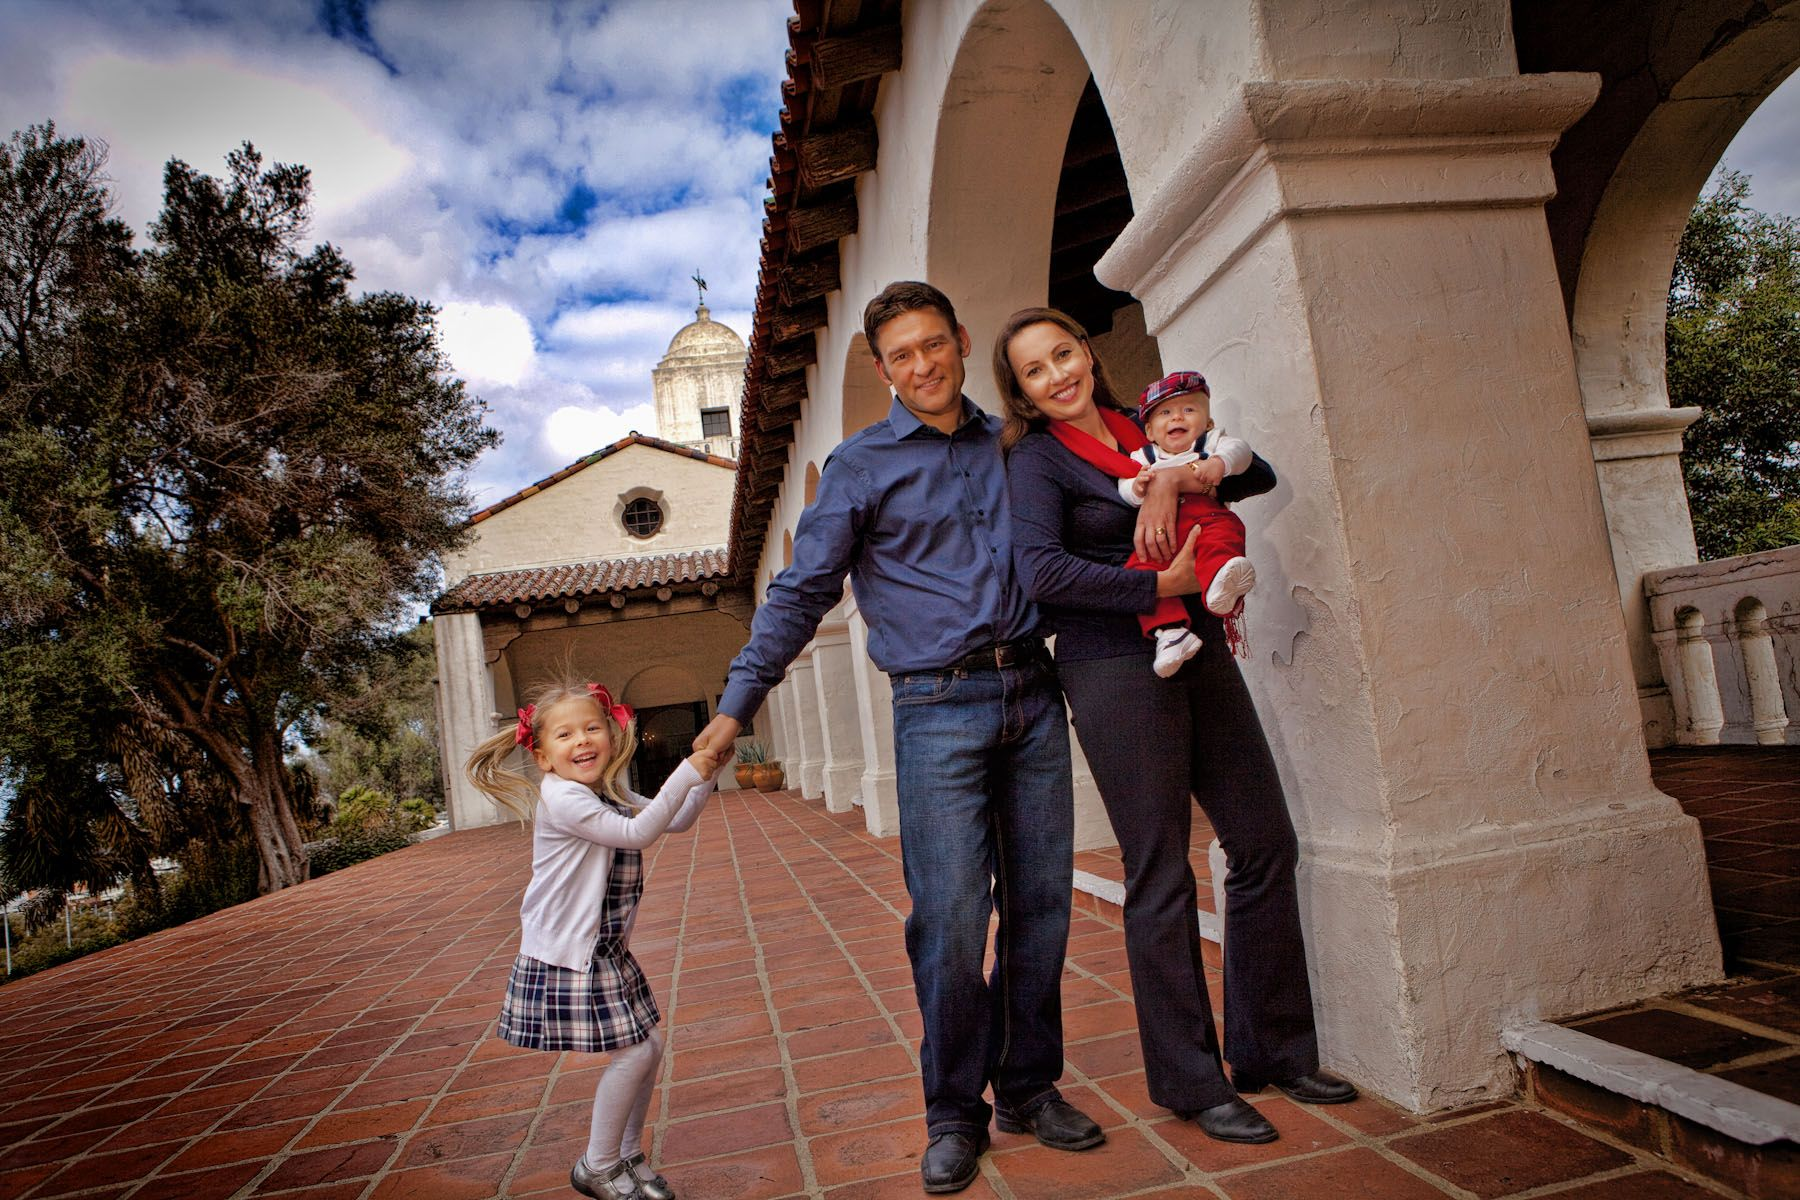 San Diego Family Photo, Presidio Park